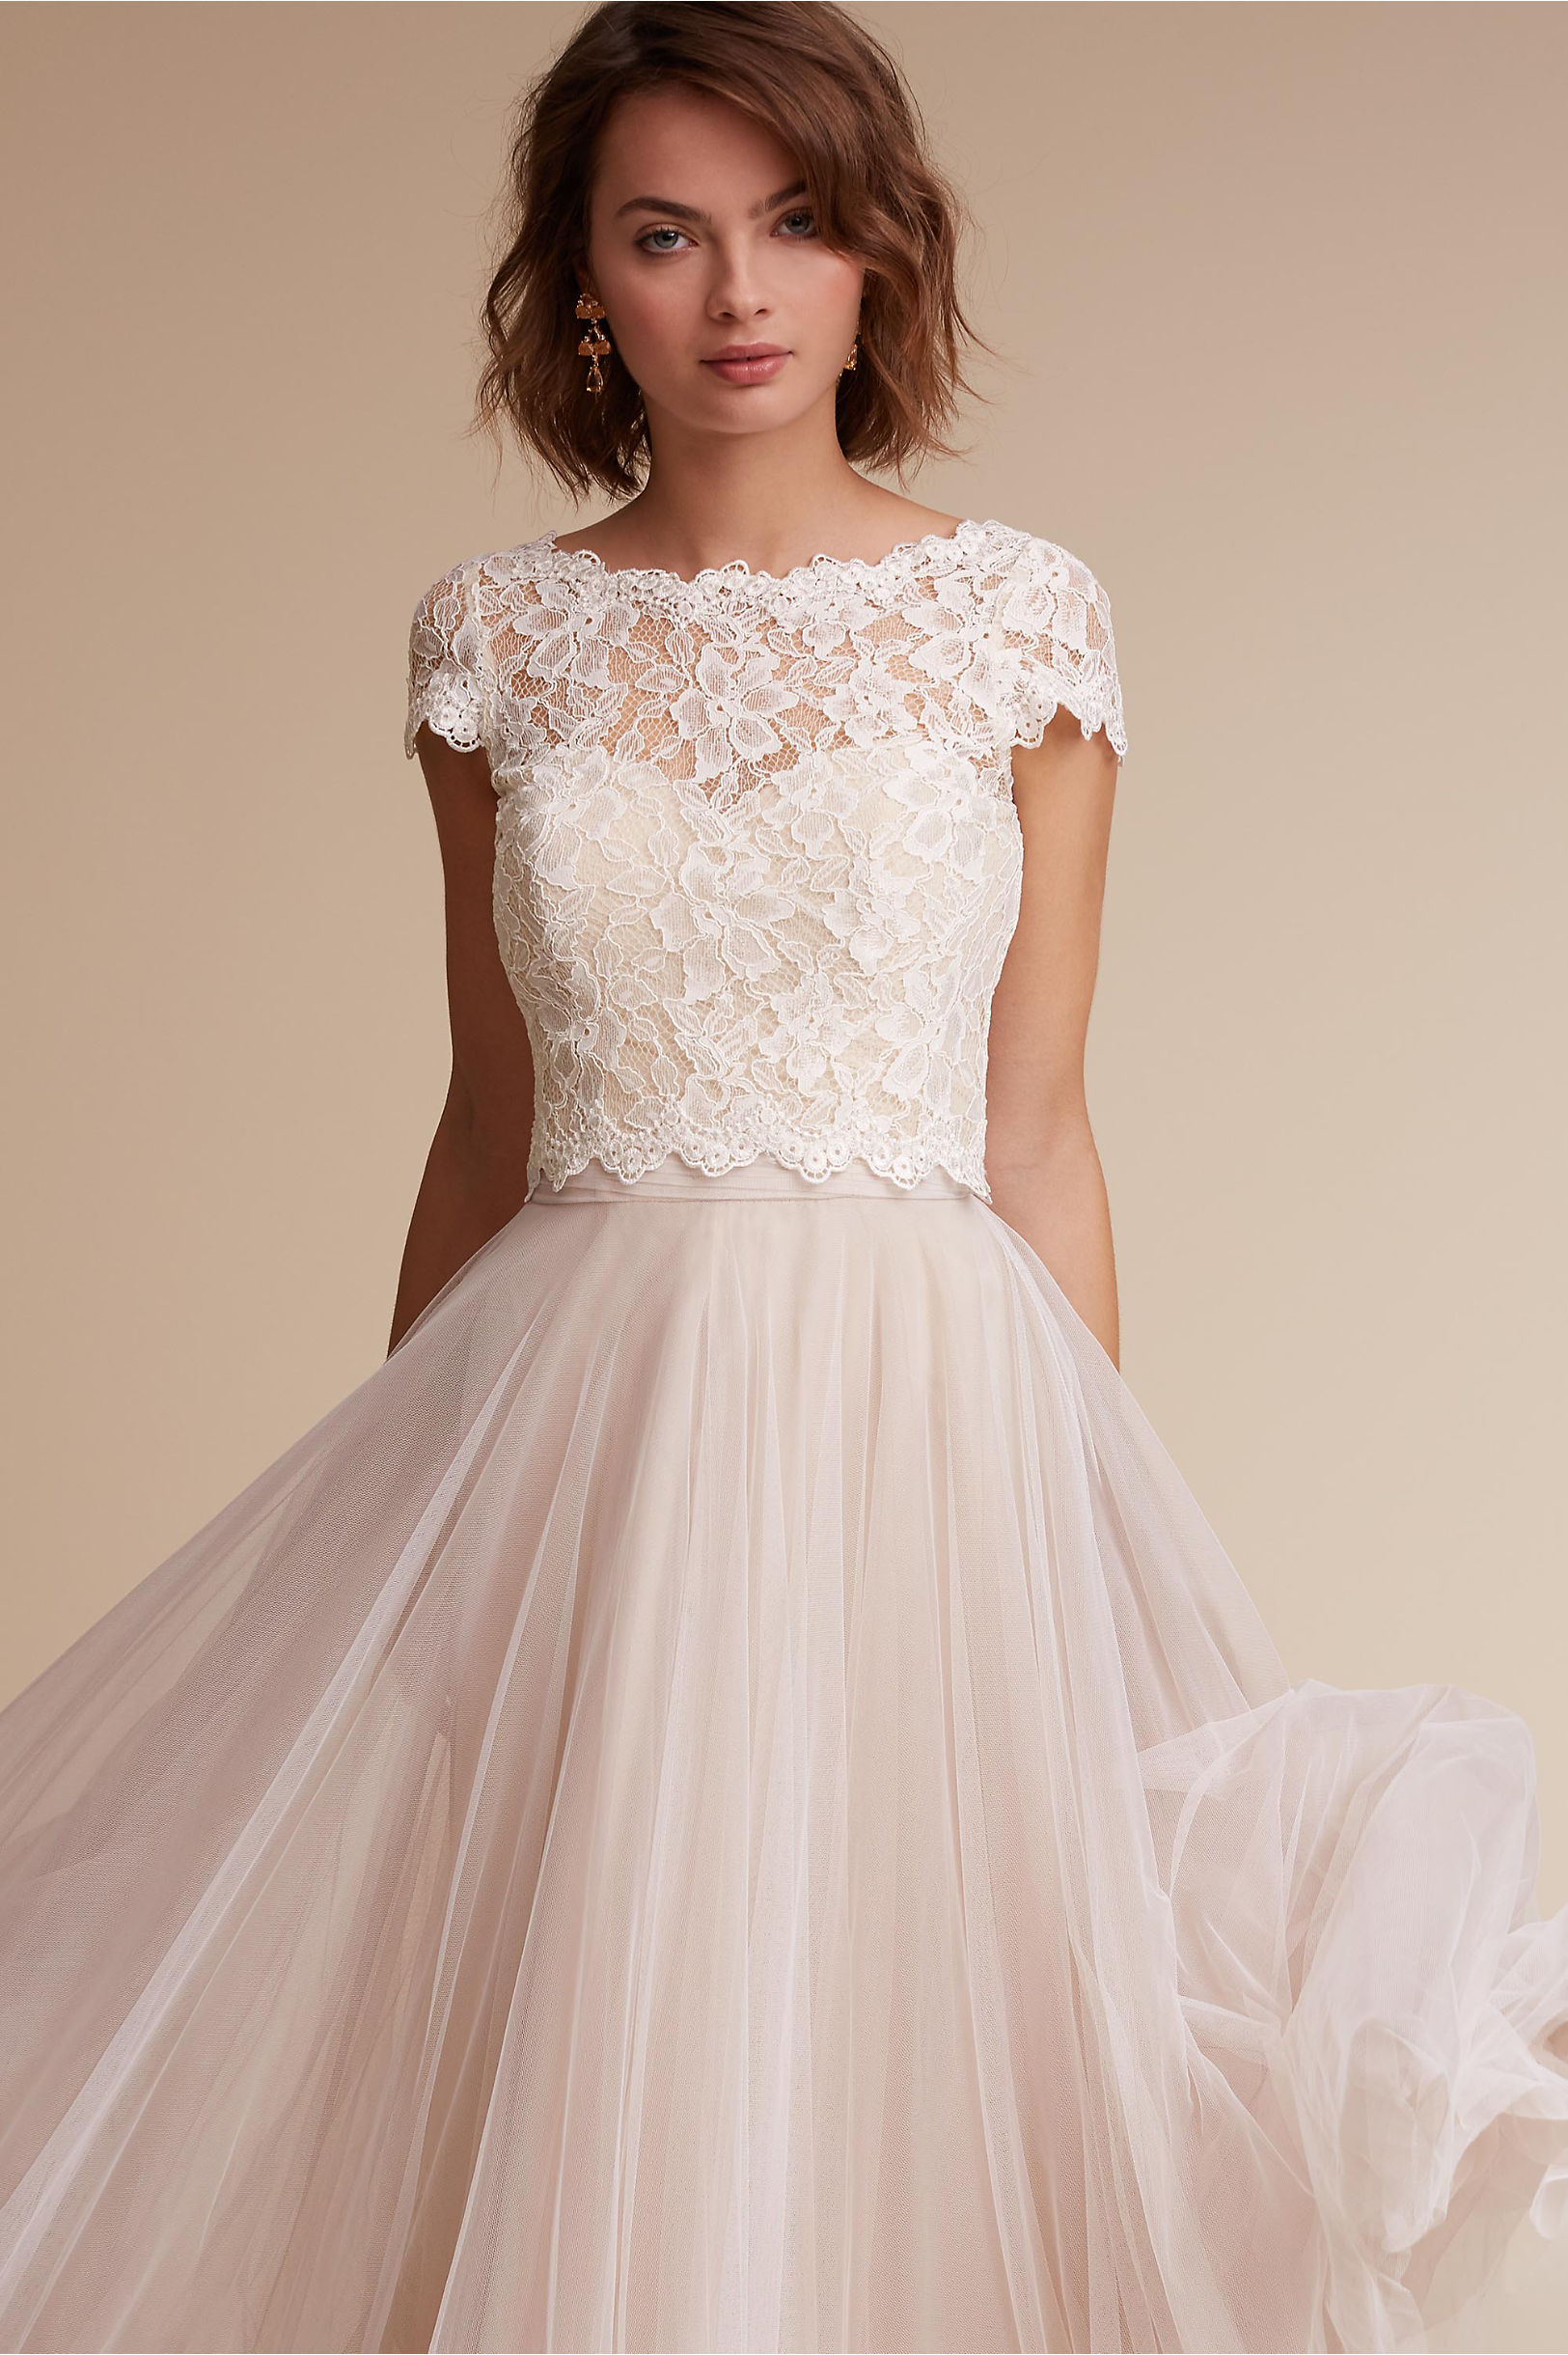 Wedding Dress Cover Up.20 Stylish Bridal Cover Ups Toppers To Transform Your Look